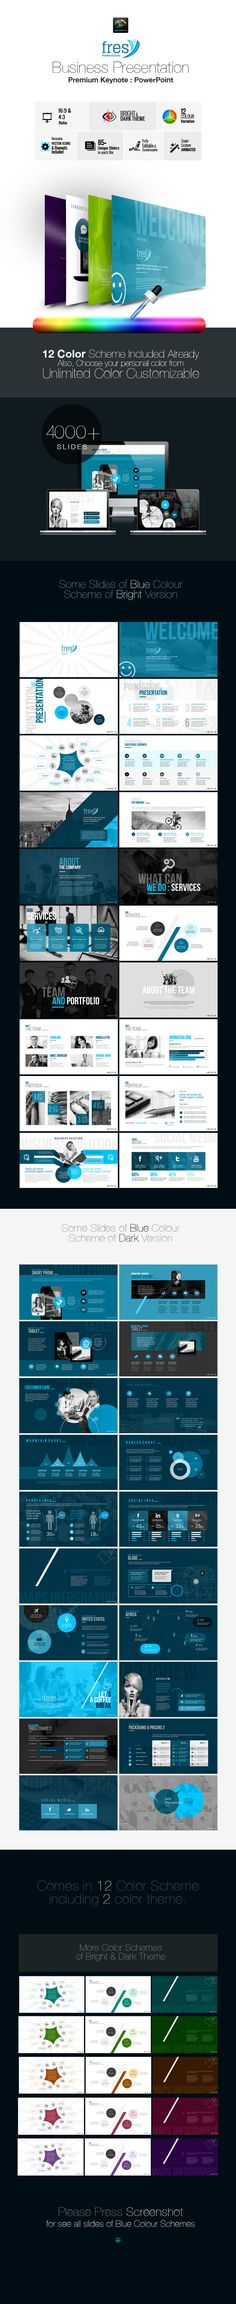 Fresy Business PowerPoint,  Fresy Multipurpose Business Presentation PowerPoint Template Clean, Creative and Corporate Presentation Templates 12 Different Color Schemes included & Fully editable; Easy to change colors, text, photos & other elements. 85  Unique Custom Slides & 4000  Slides in total 12 Keynote files for both of 16:9 & 4:3 Ratio All Elements inc